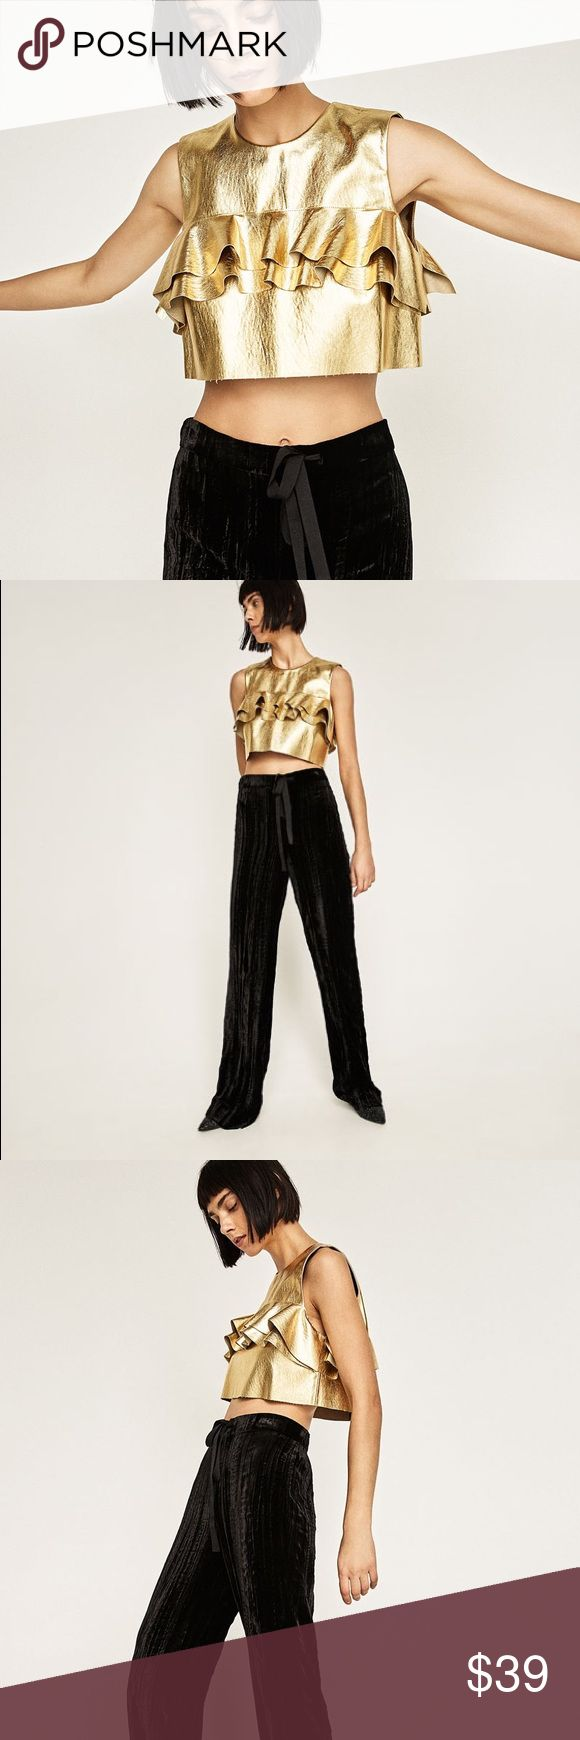 Zara metallic crop top Love ruffle details... you'll be noticed for sure... pair with high waisted bottoms Zara Tops Crop Tops